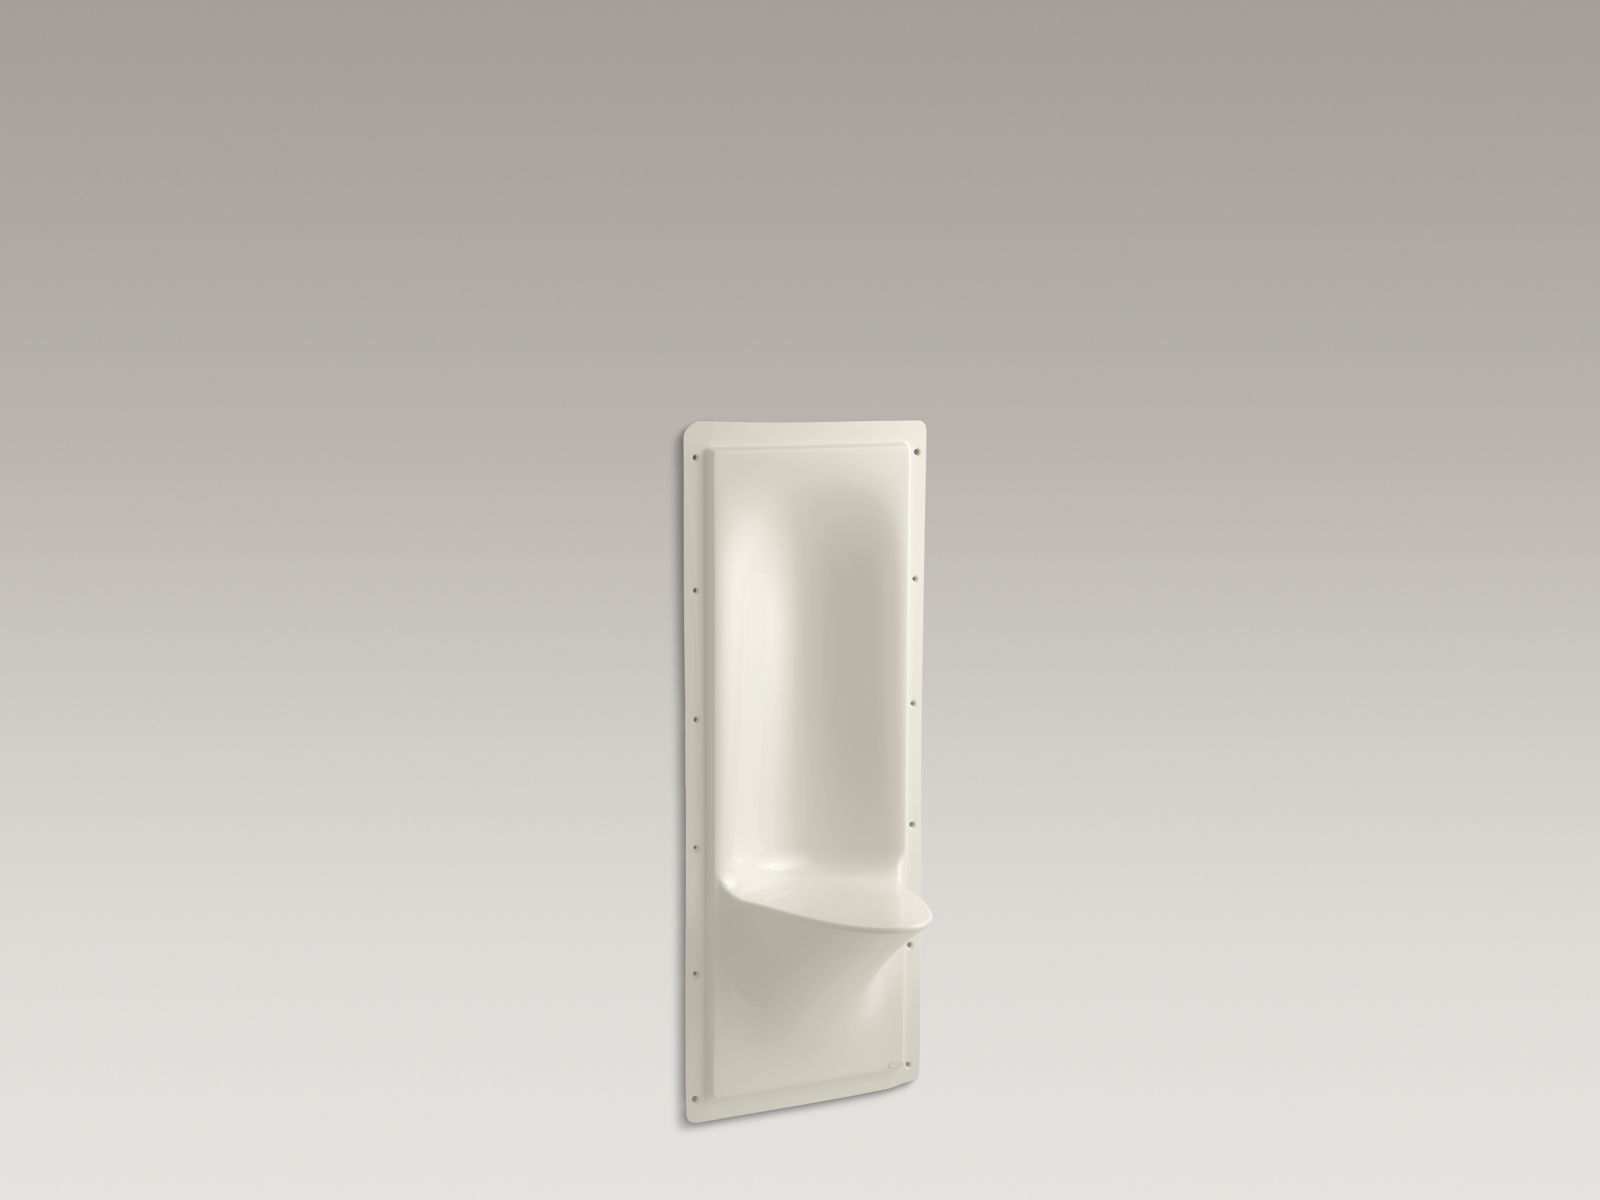 BuyPlumbing.net - Product: Kohler K-1843-47 Echelon Shower Seat Almond